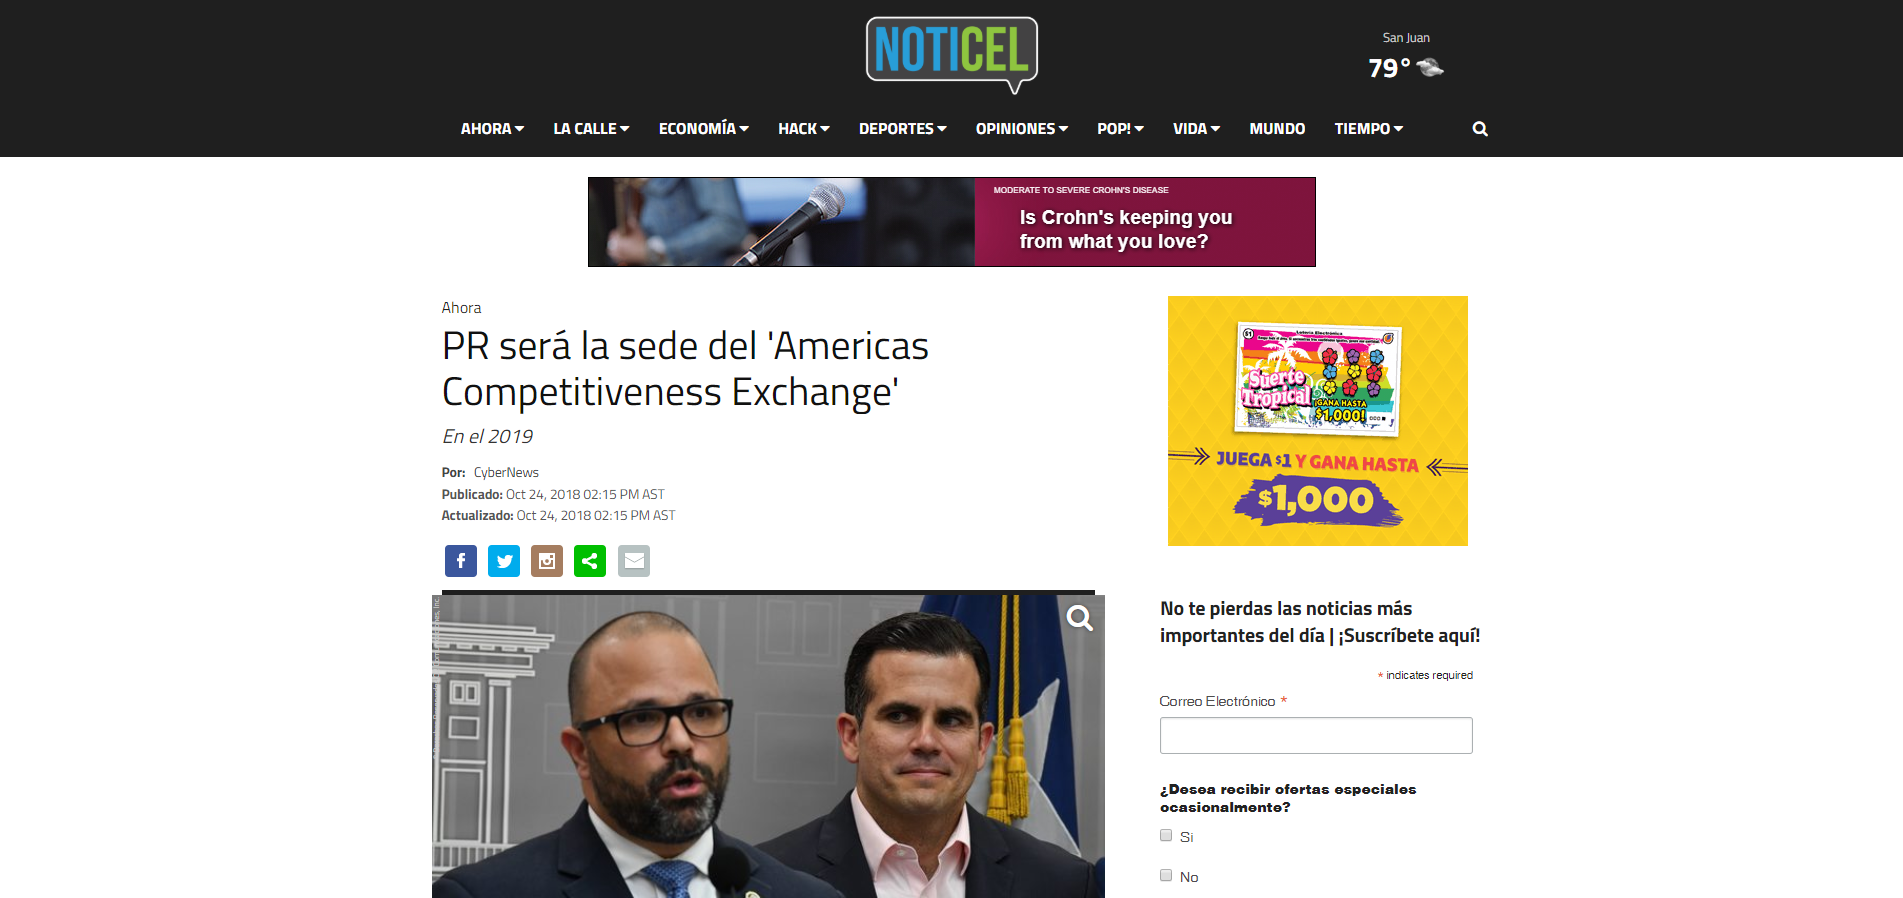 """PR será la sede del 'Americas Competitiveness Exchange'"", Noticel, October 24, 2018,"